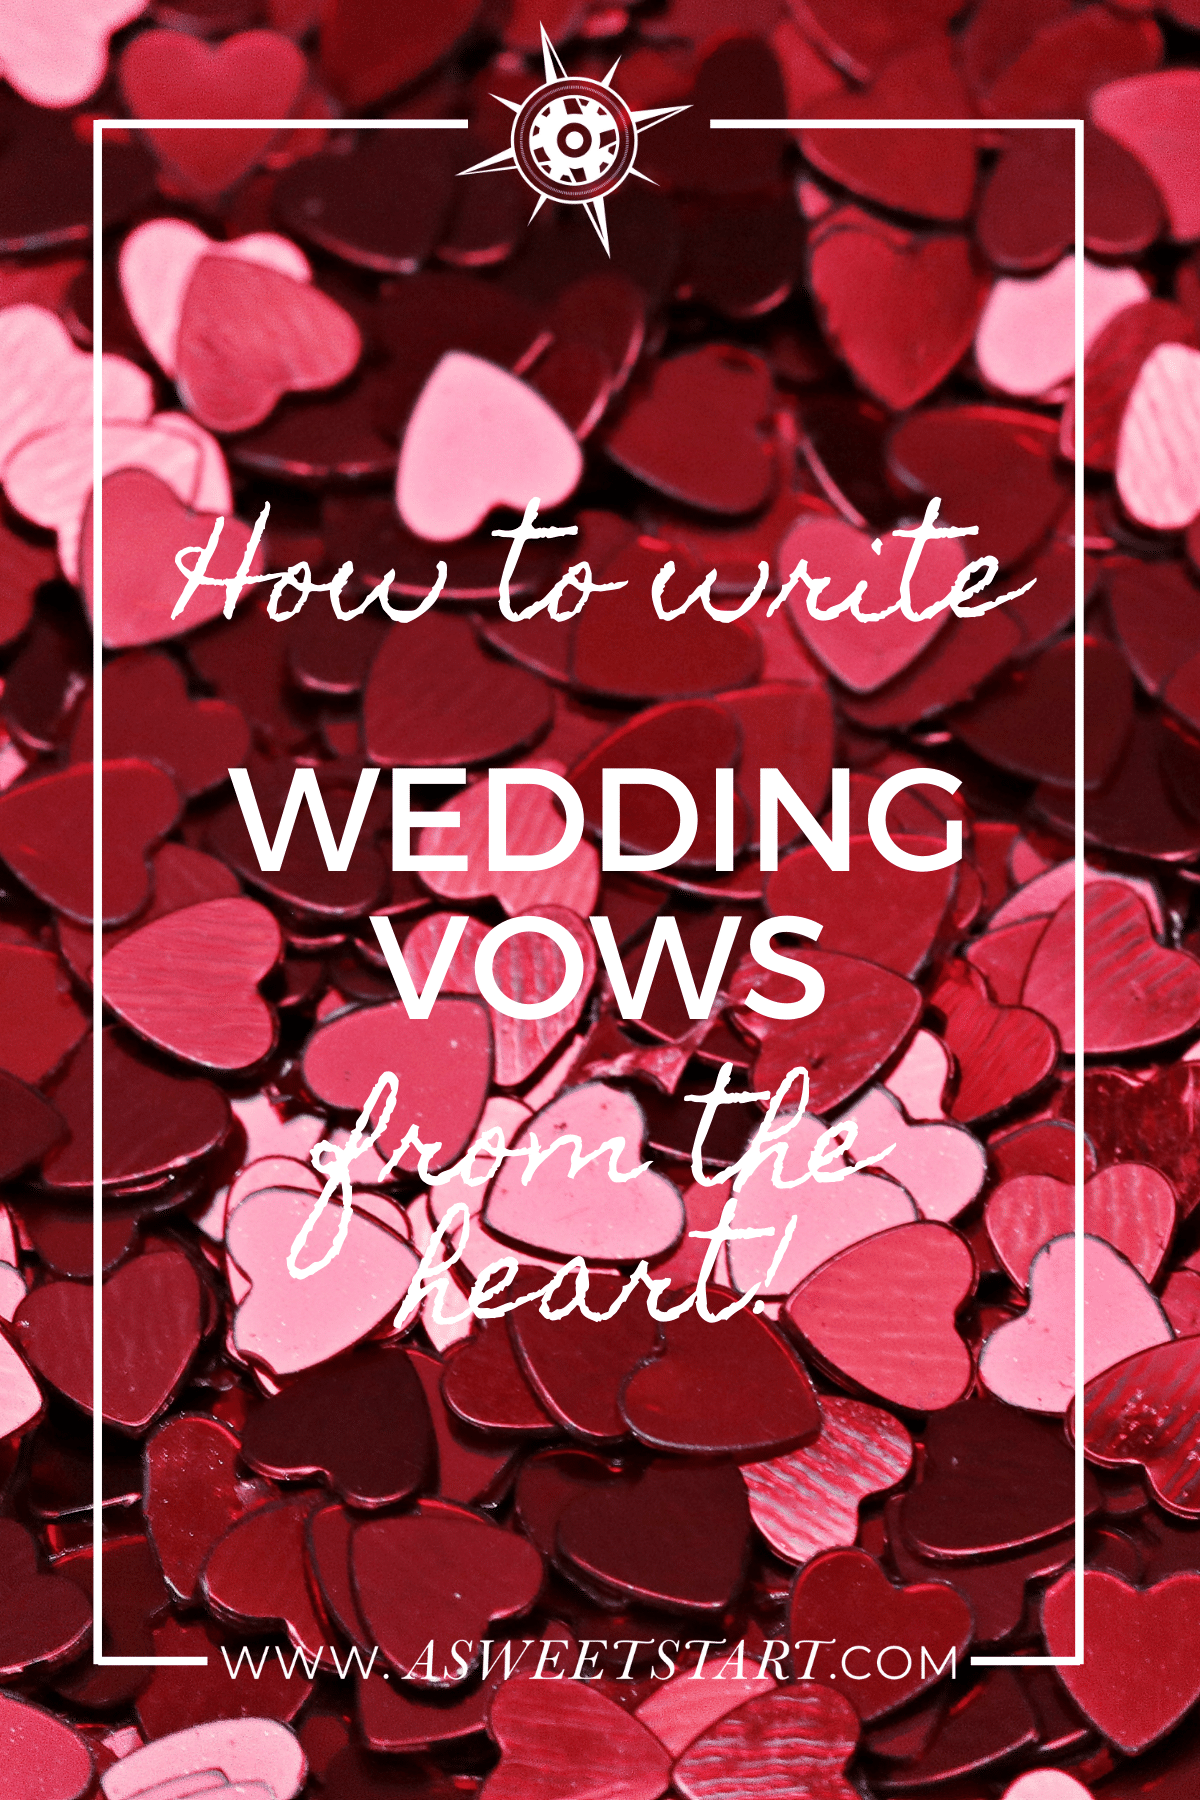 How to write wedding vows from the heart: a workbook